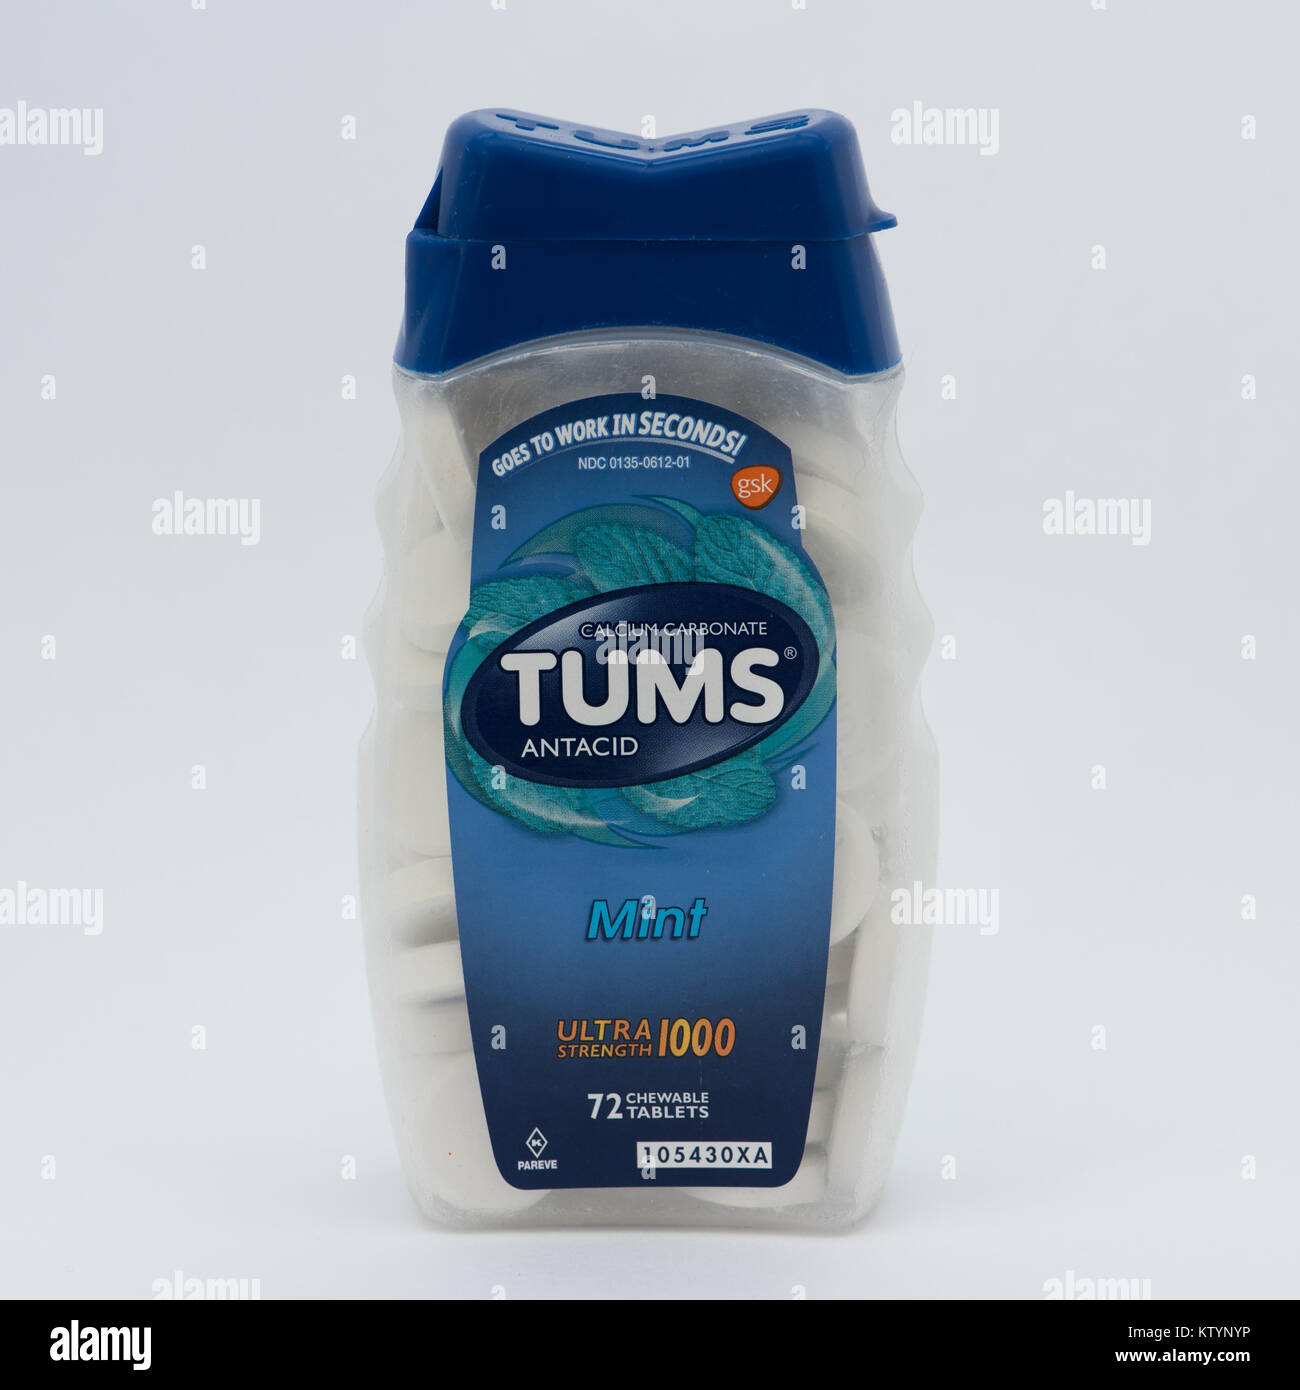 A bottle of Tums brand antacid tablets used to provide relief from acid indigestion, heartburn and acid reflux issues. - Stock Image